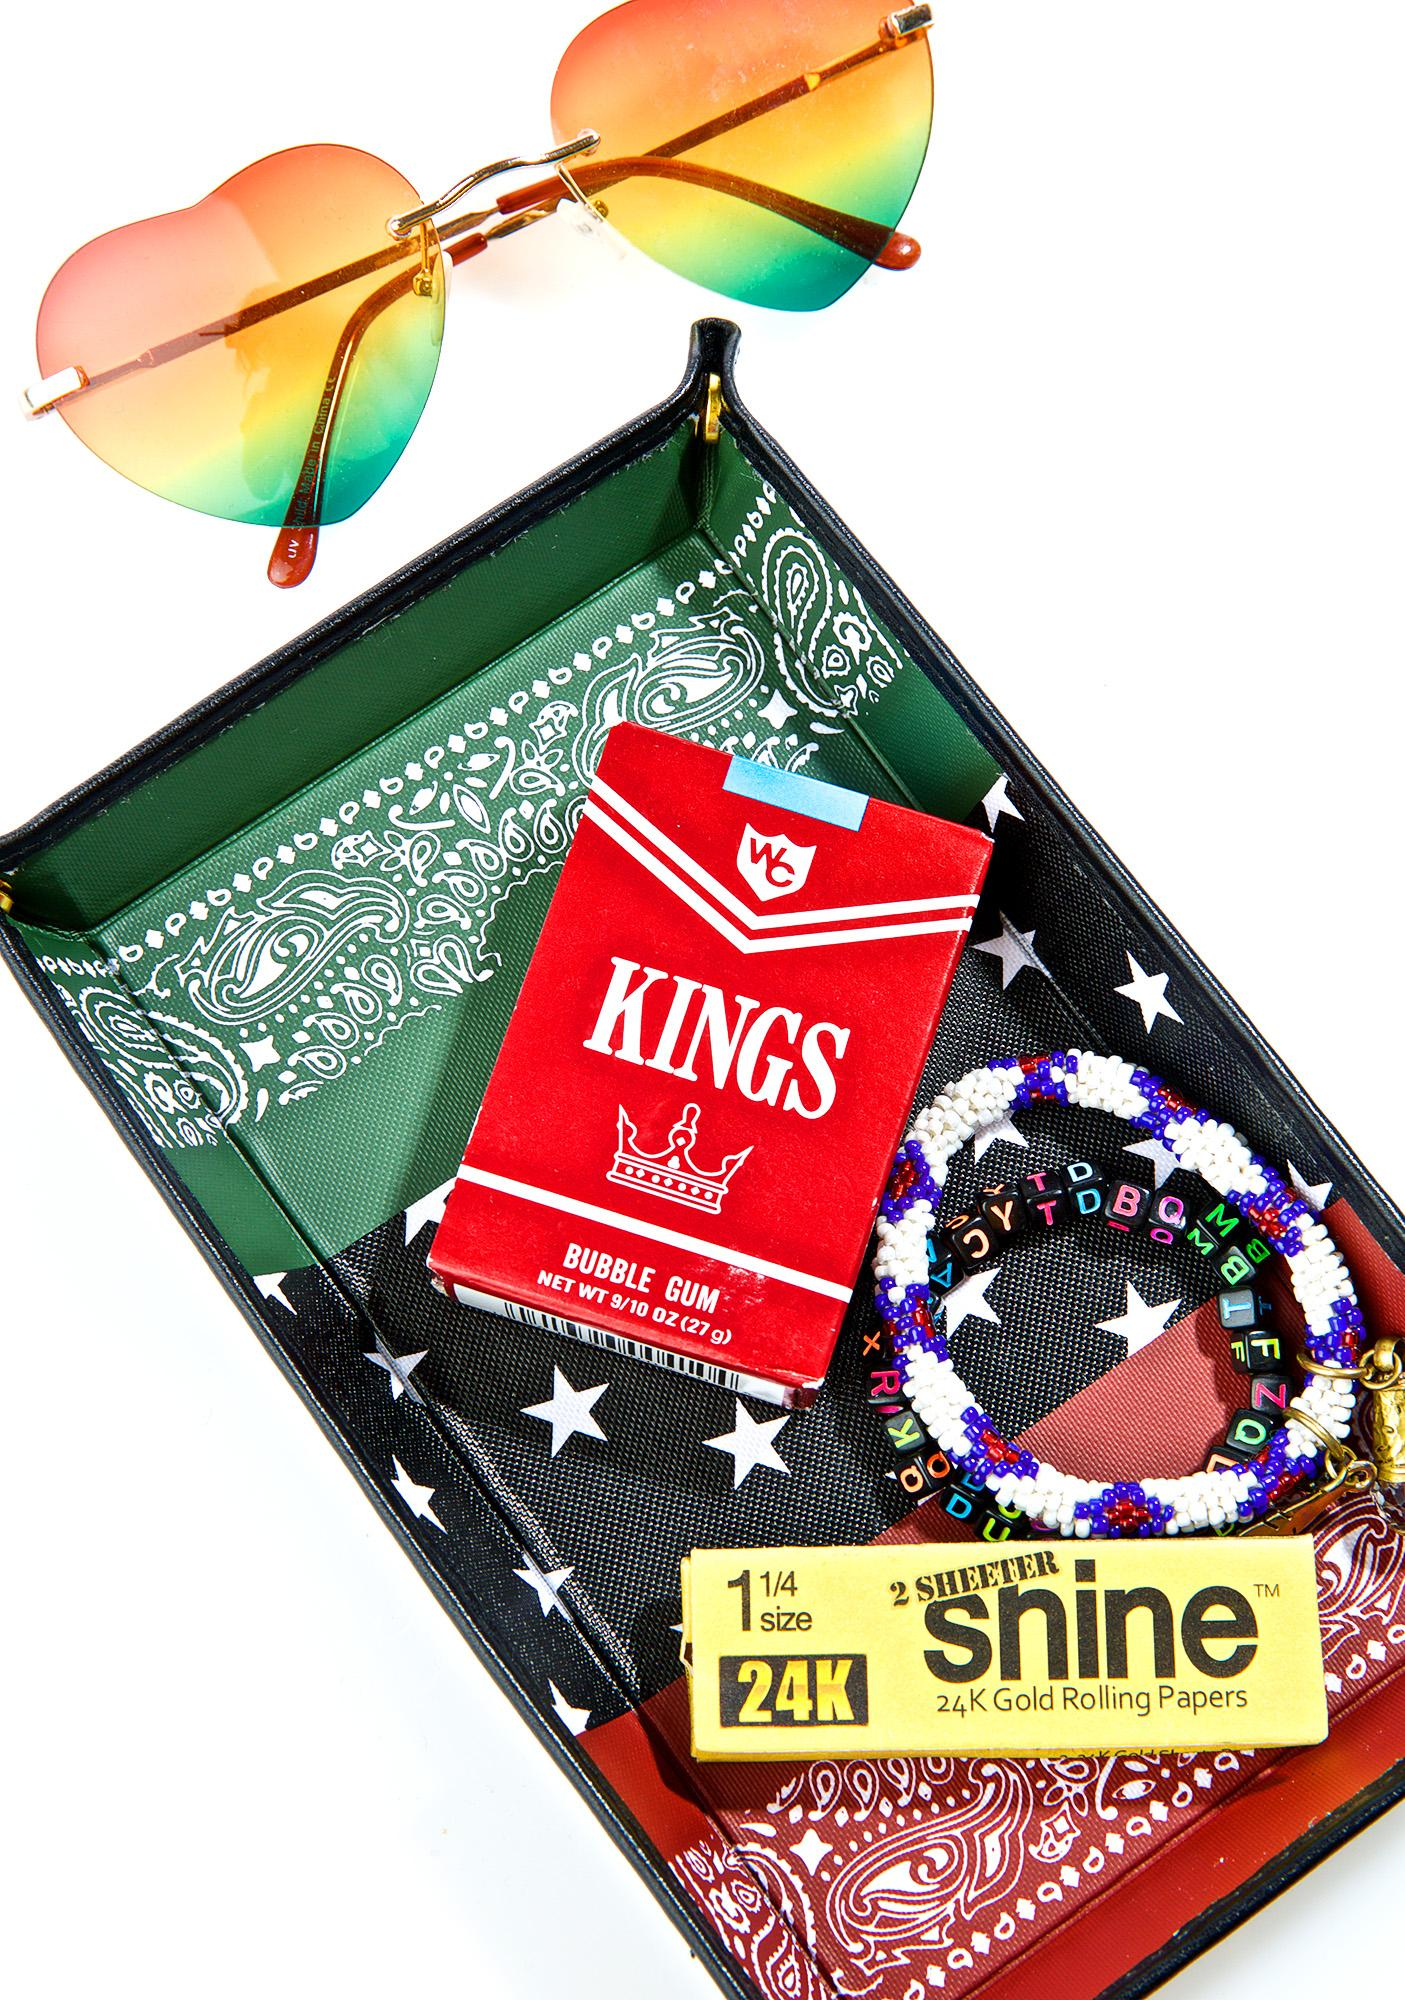 Black Scale RBG Bandana Accessory Tray